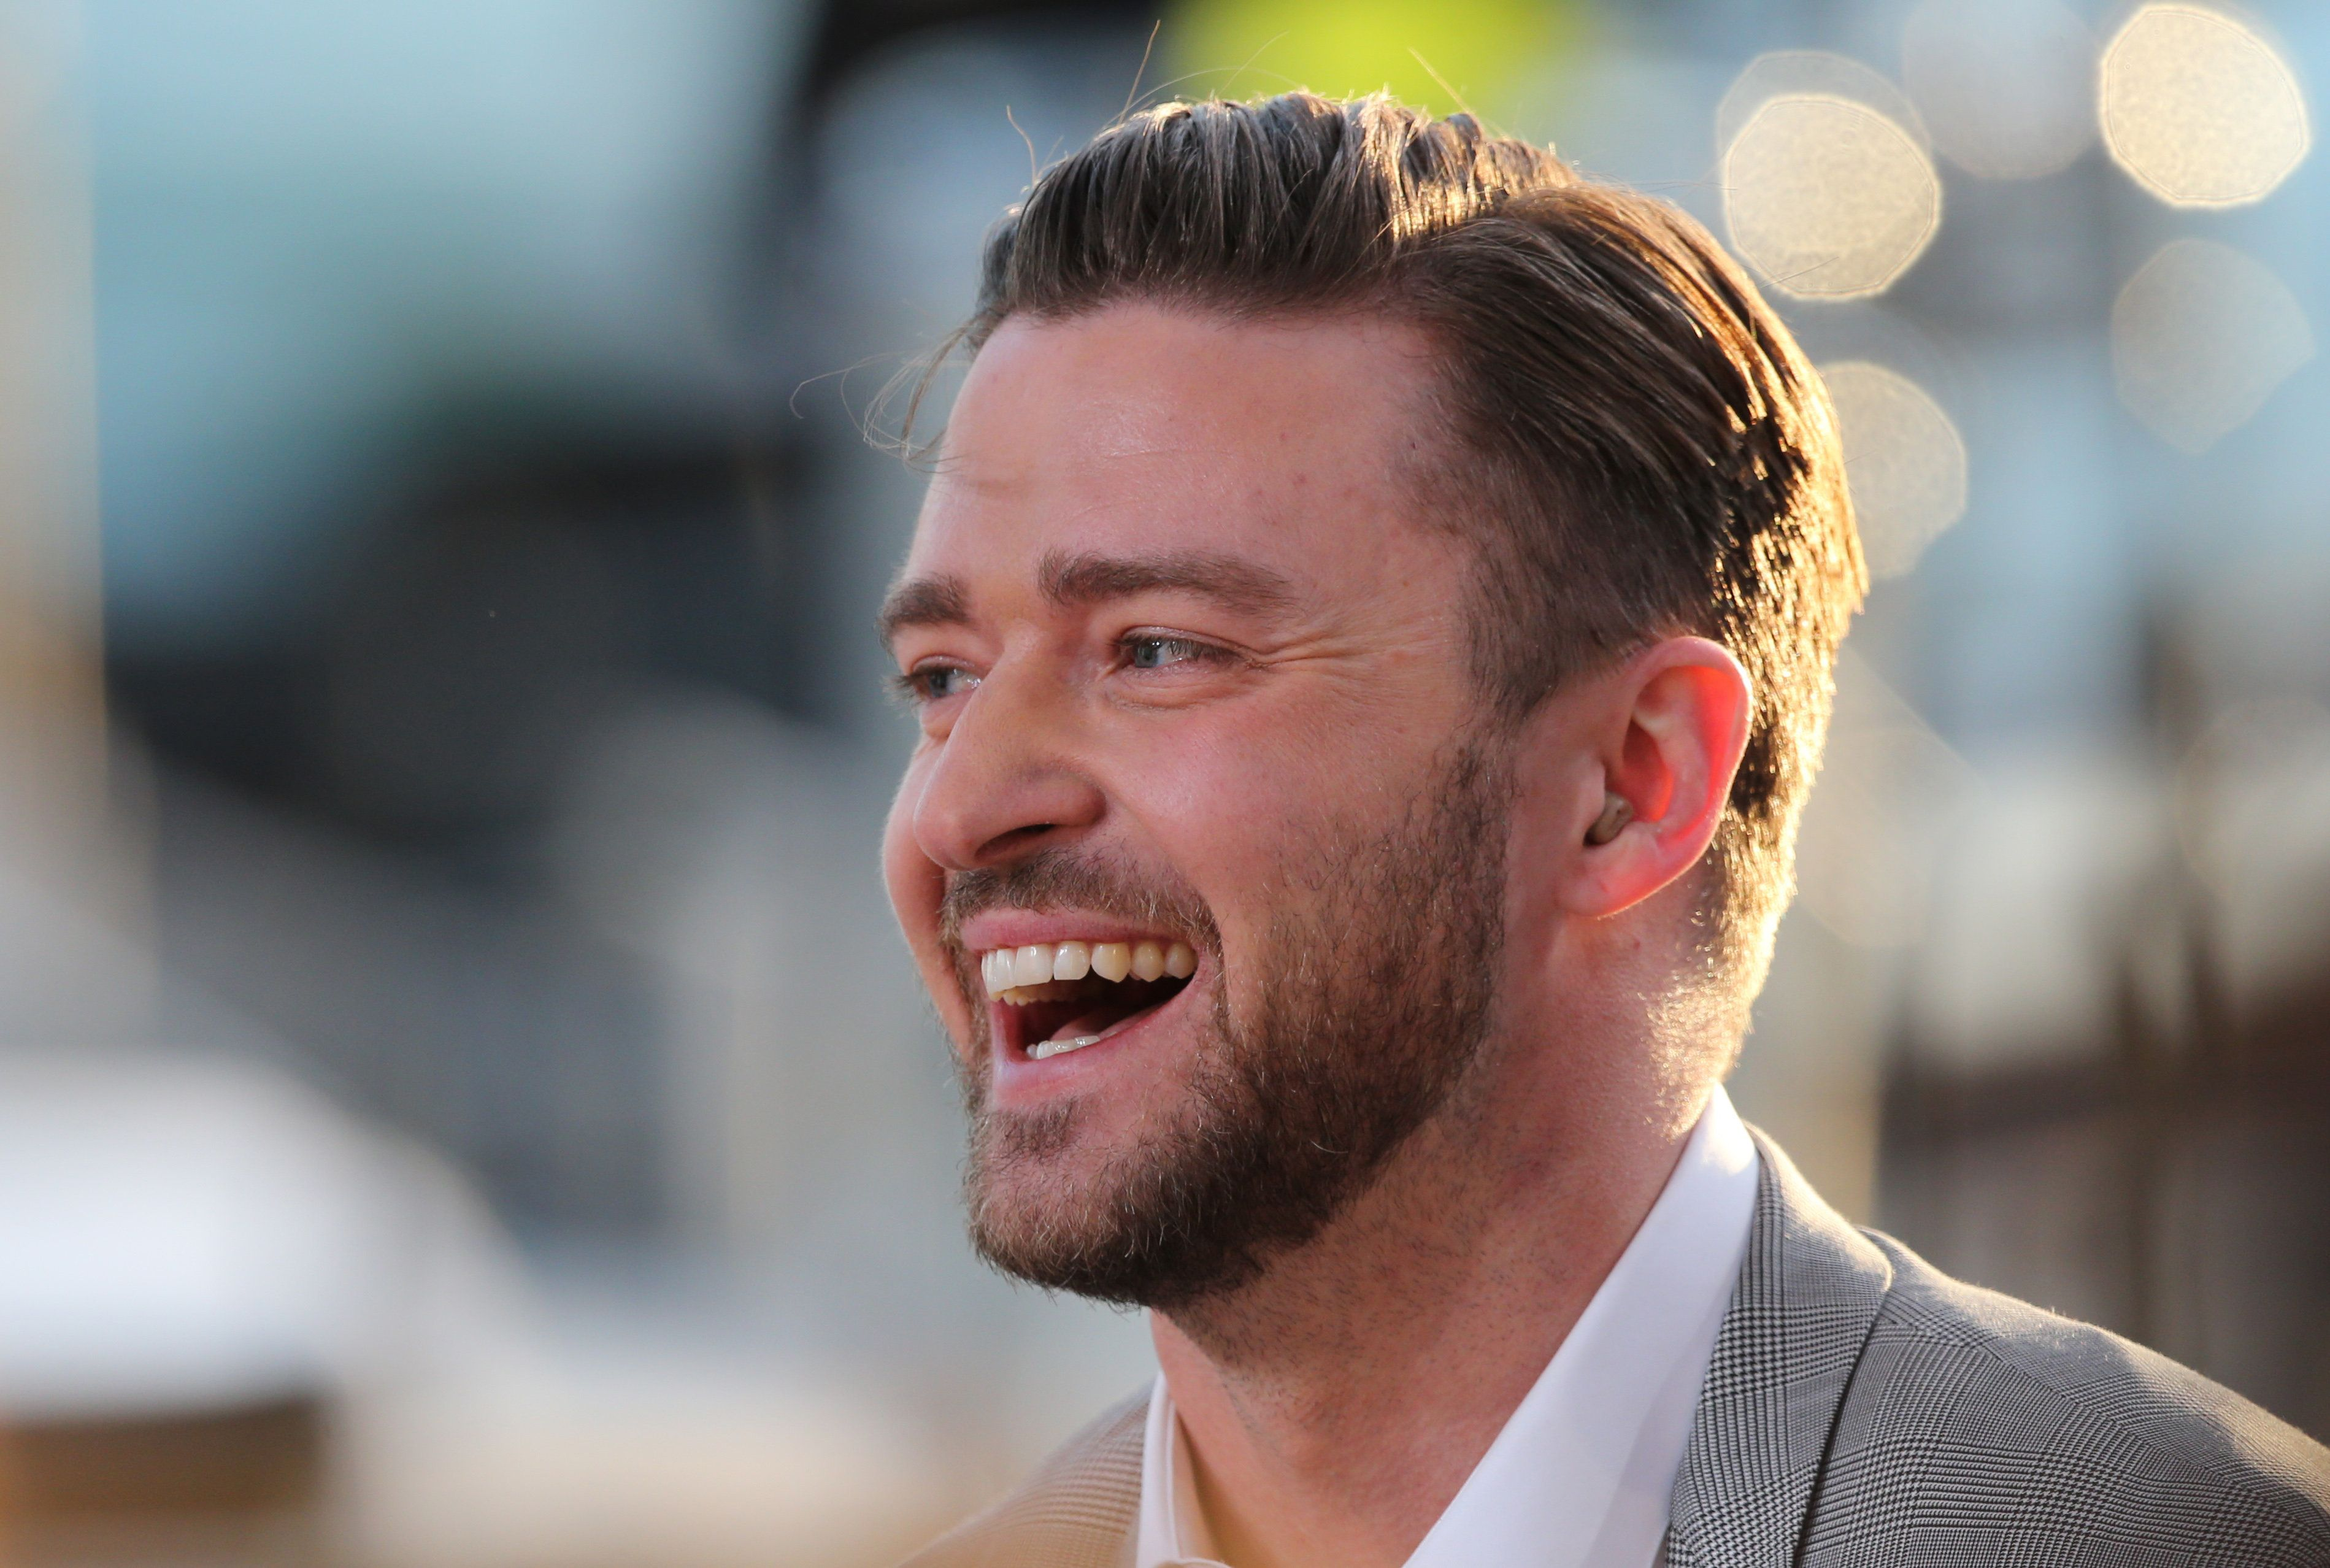 Justin Timberlake got real about one of the not-so-glamorous parts of parenthood.